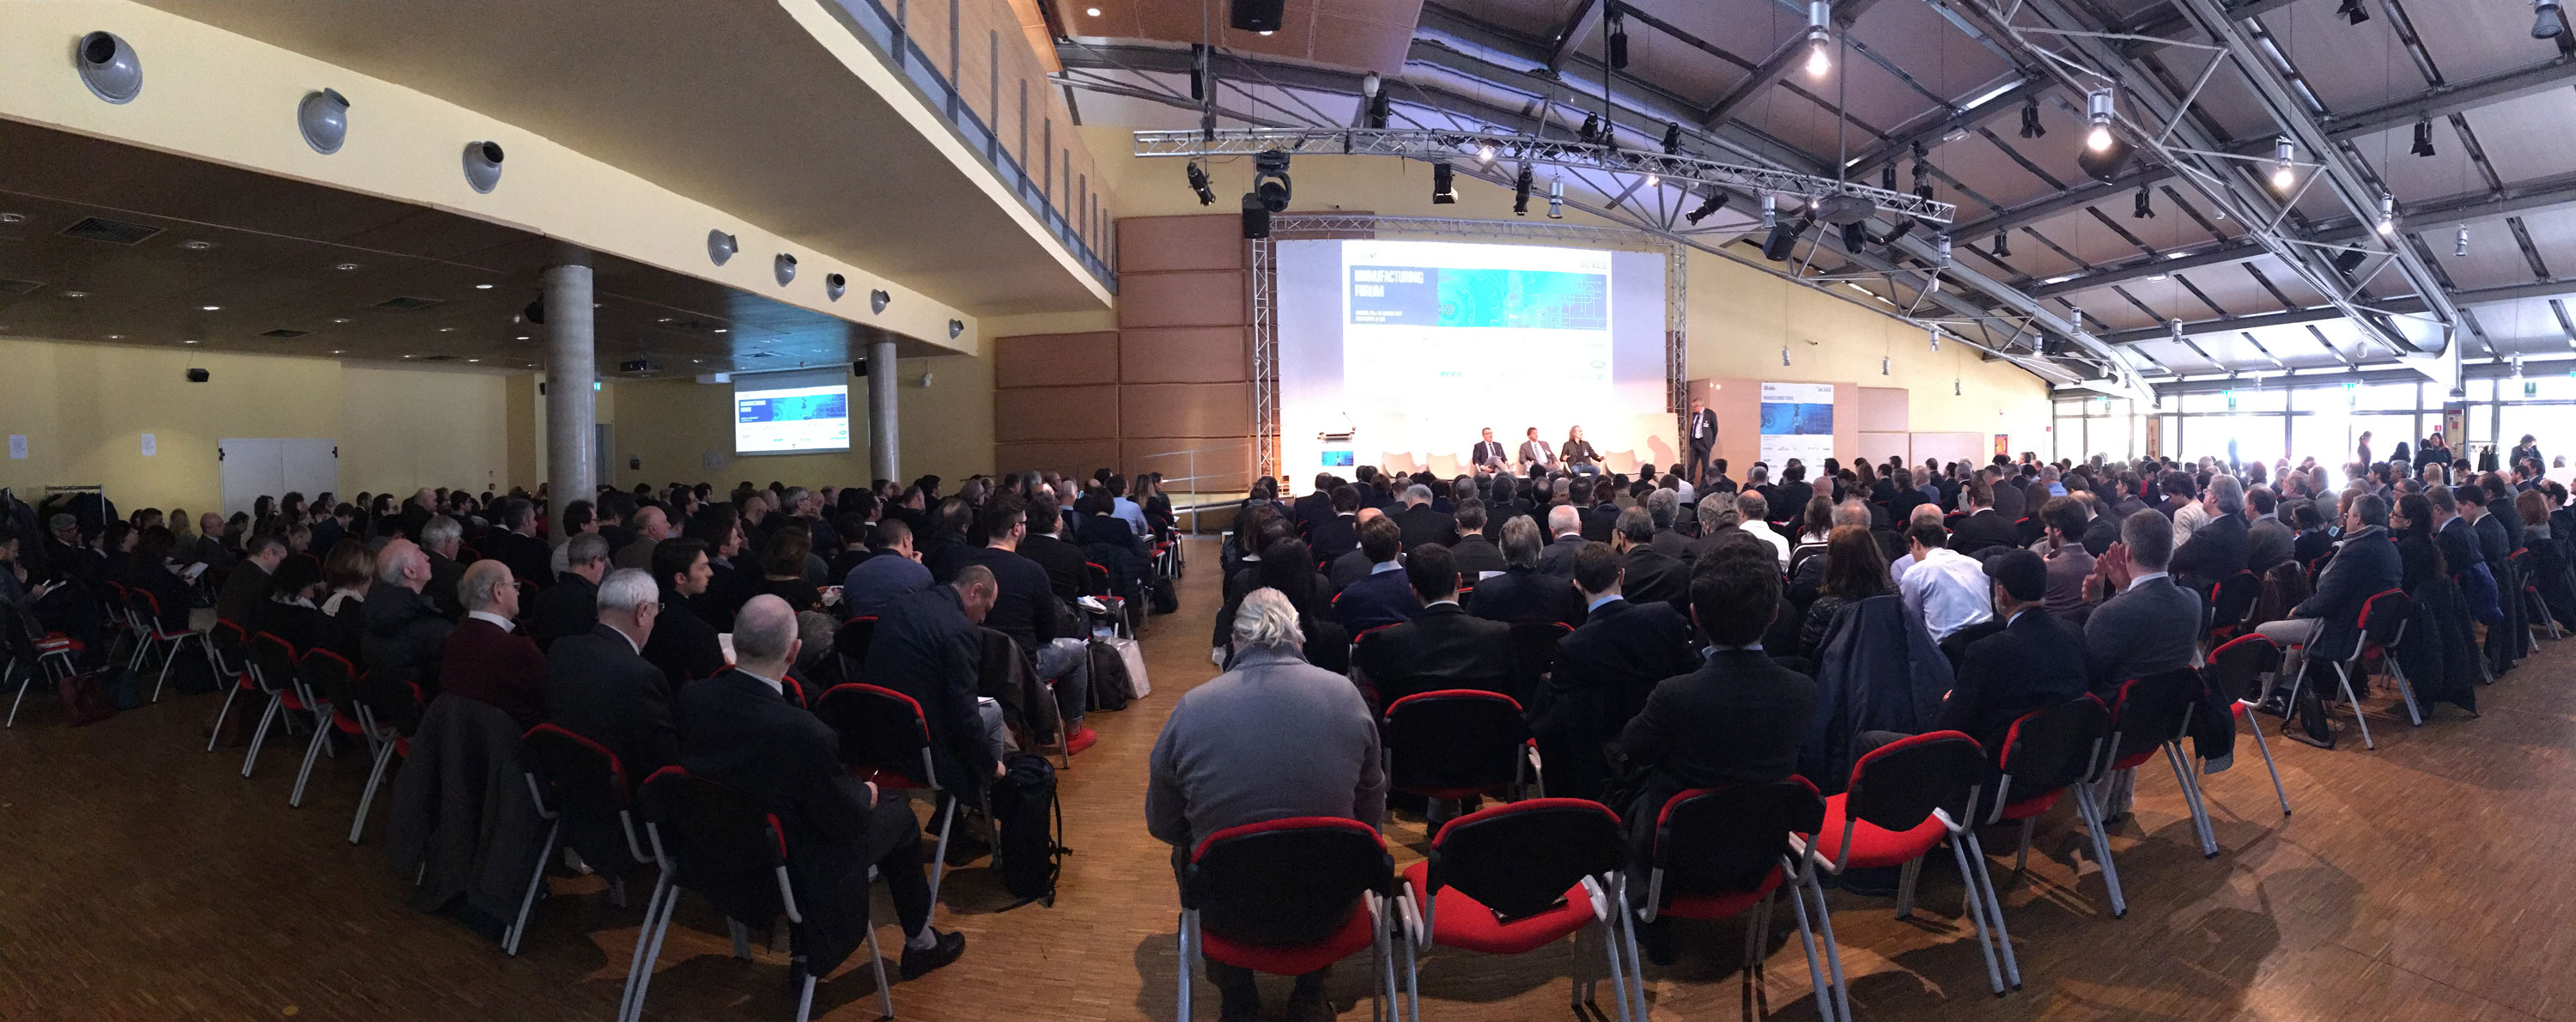 KFI_ManufacturingForum_industry4.0_panoramica_sala